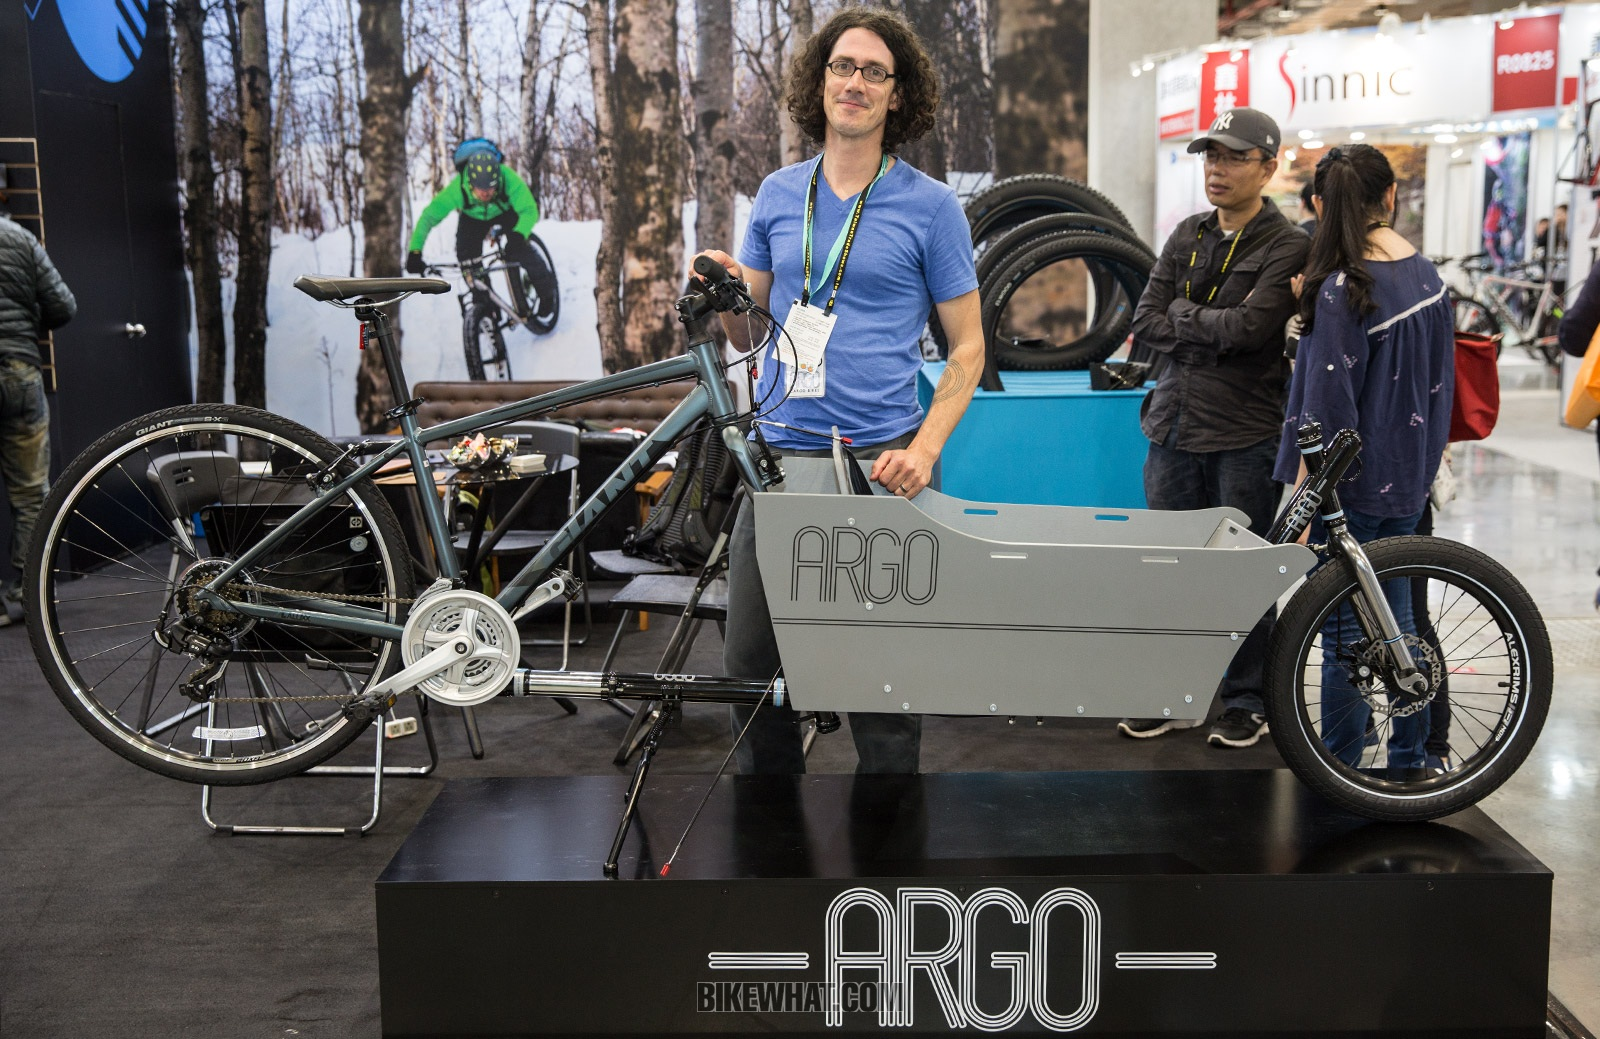 Feature_TaipeiCycle_2019_argo_1.jpg